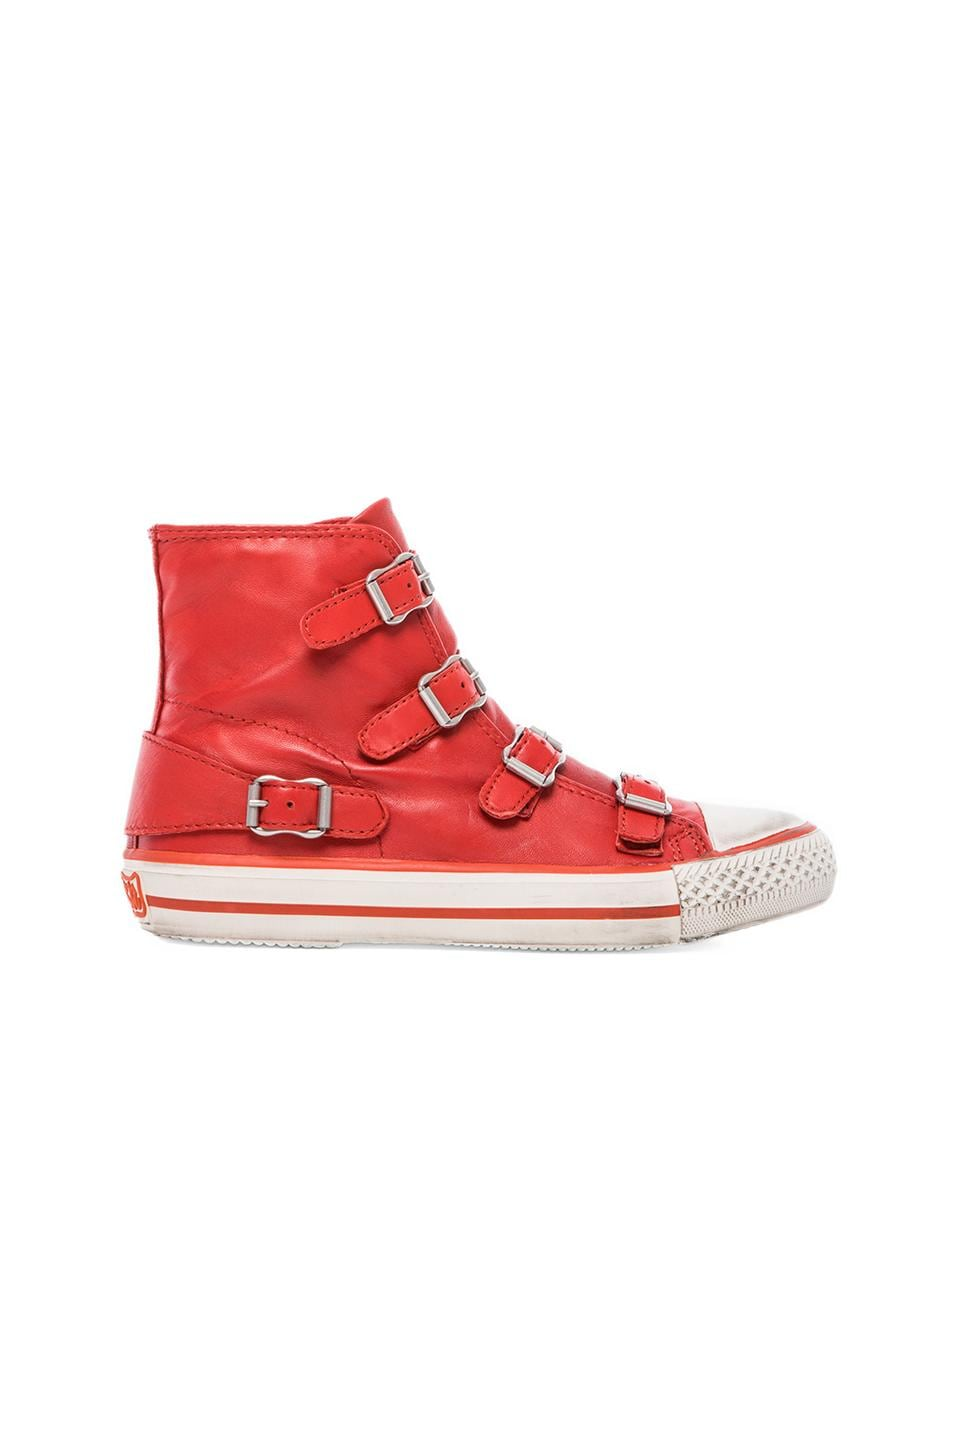 Ash Virgin Sneaker in Coral